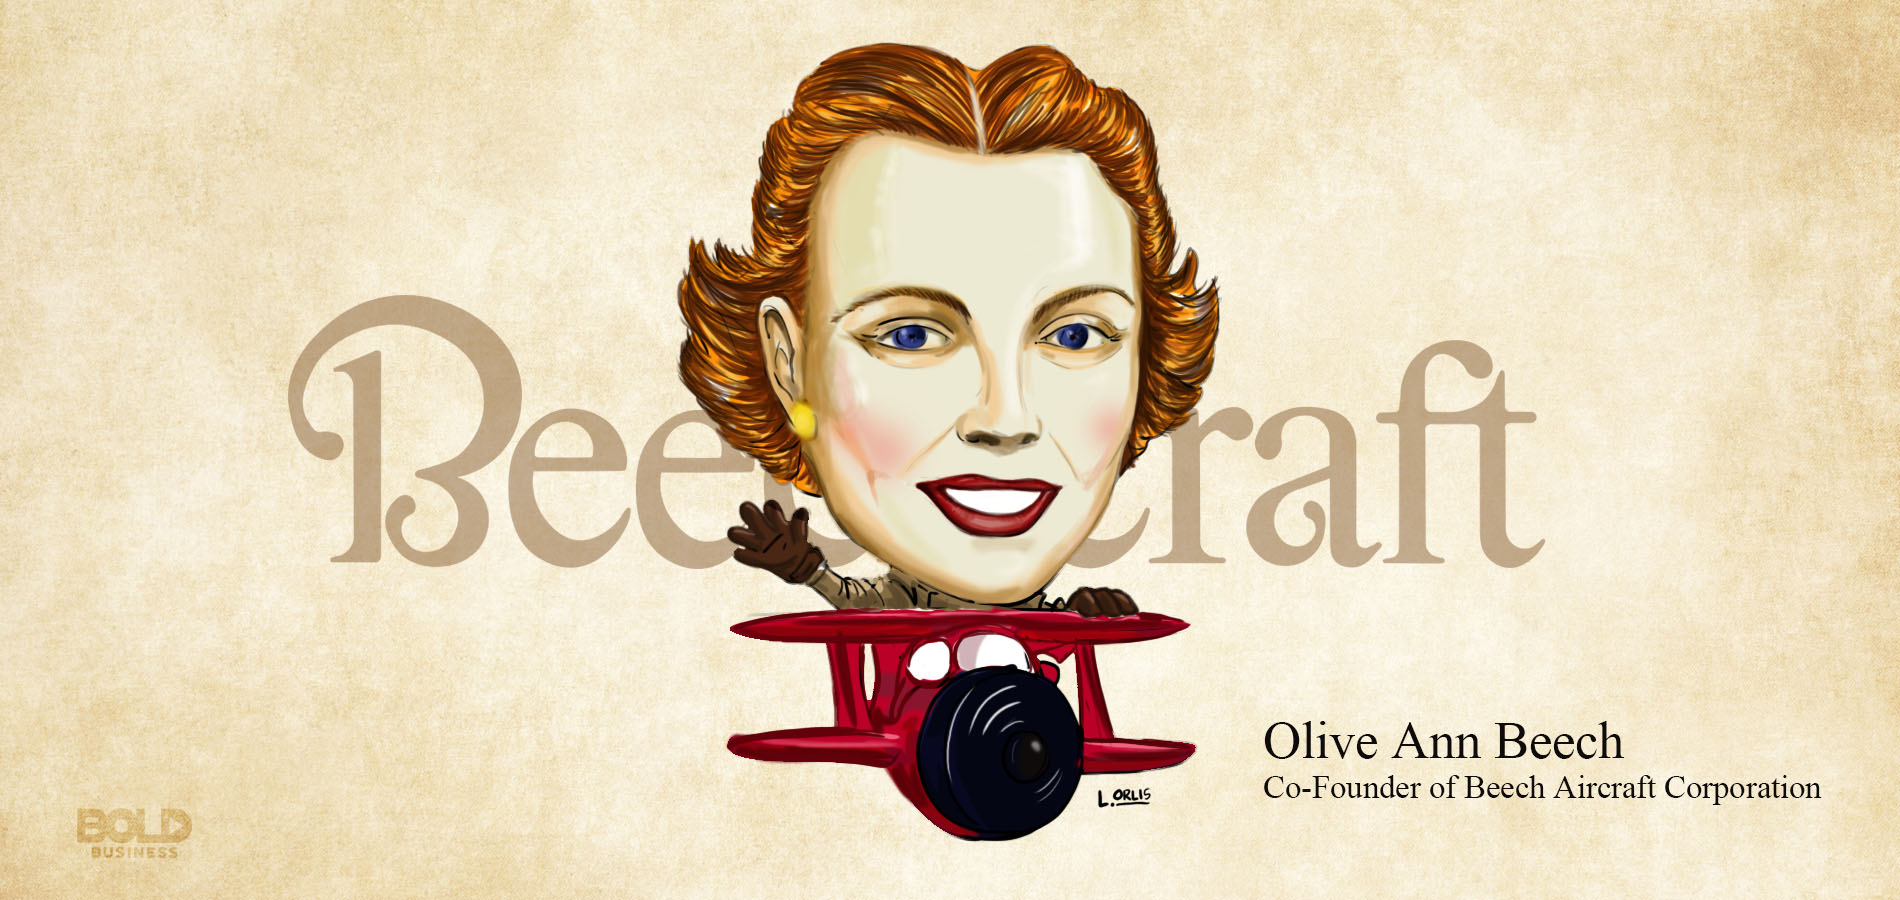 queen of the aircraft industry olive ann beech riding in a plane cartoon